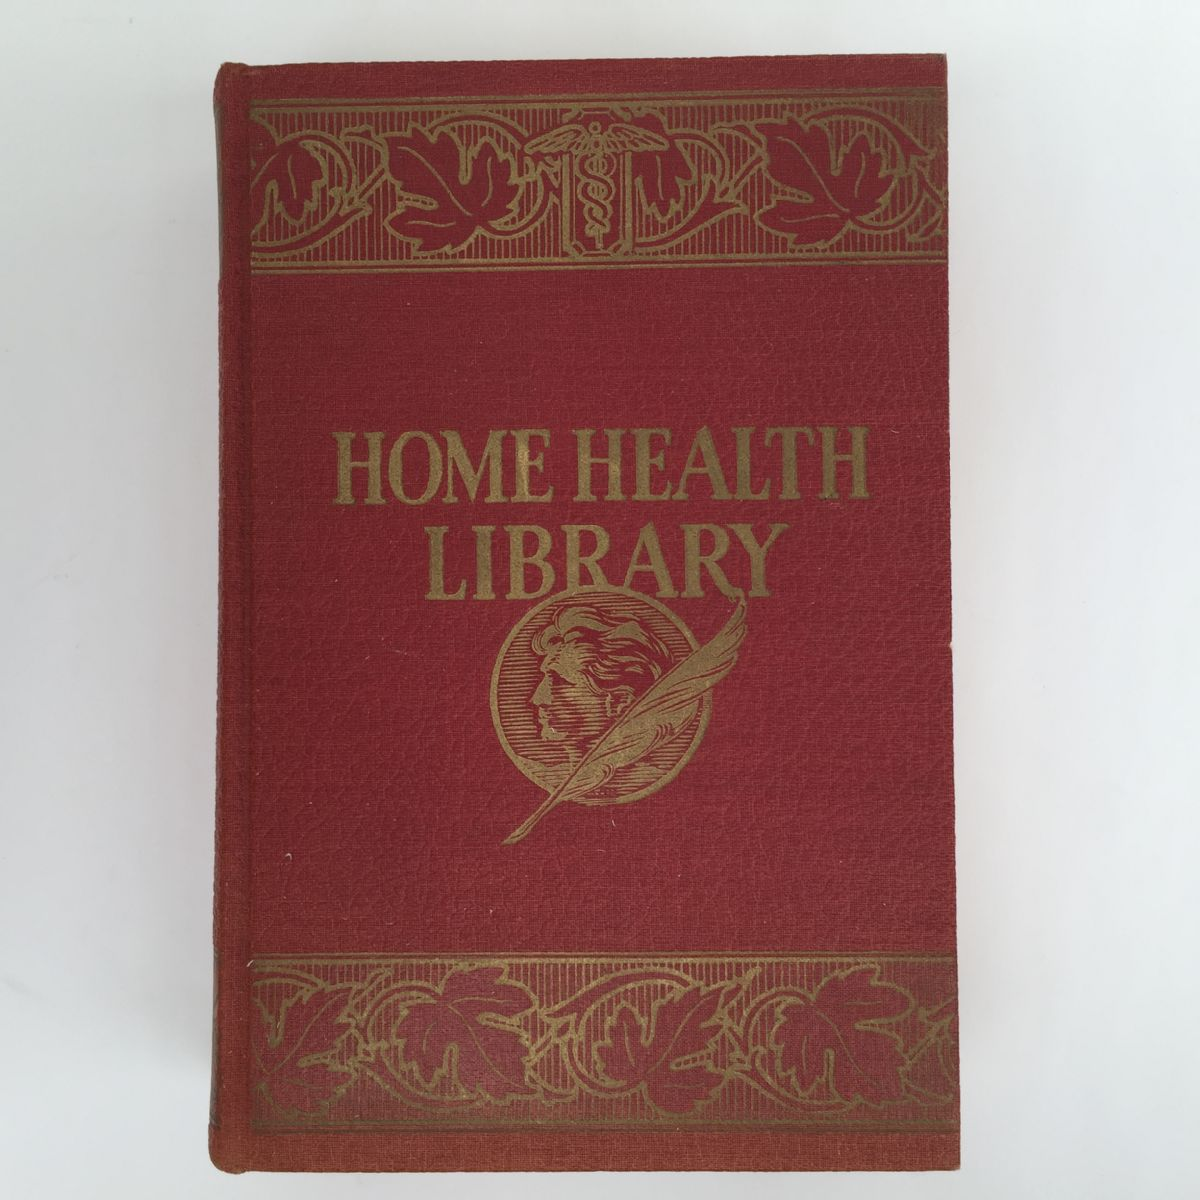 Home Health Library